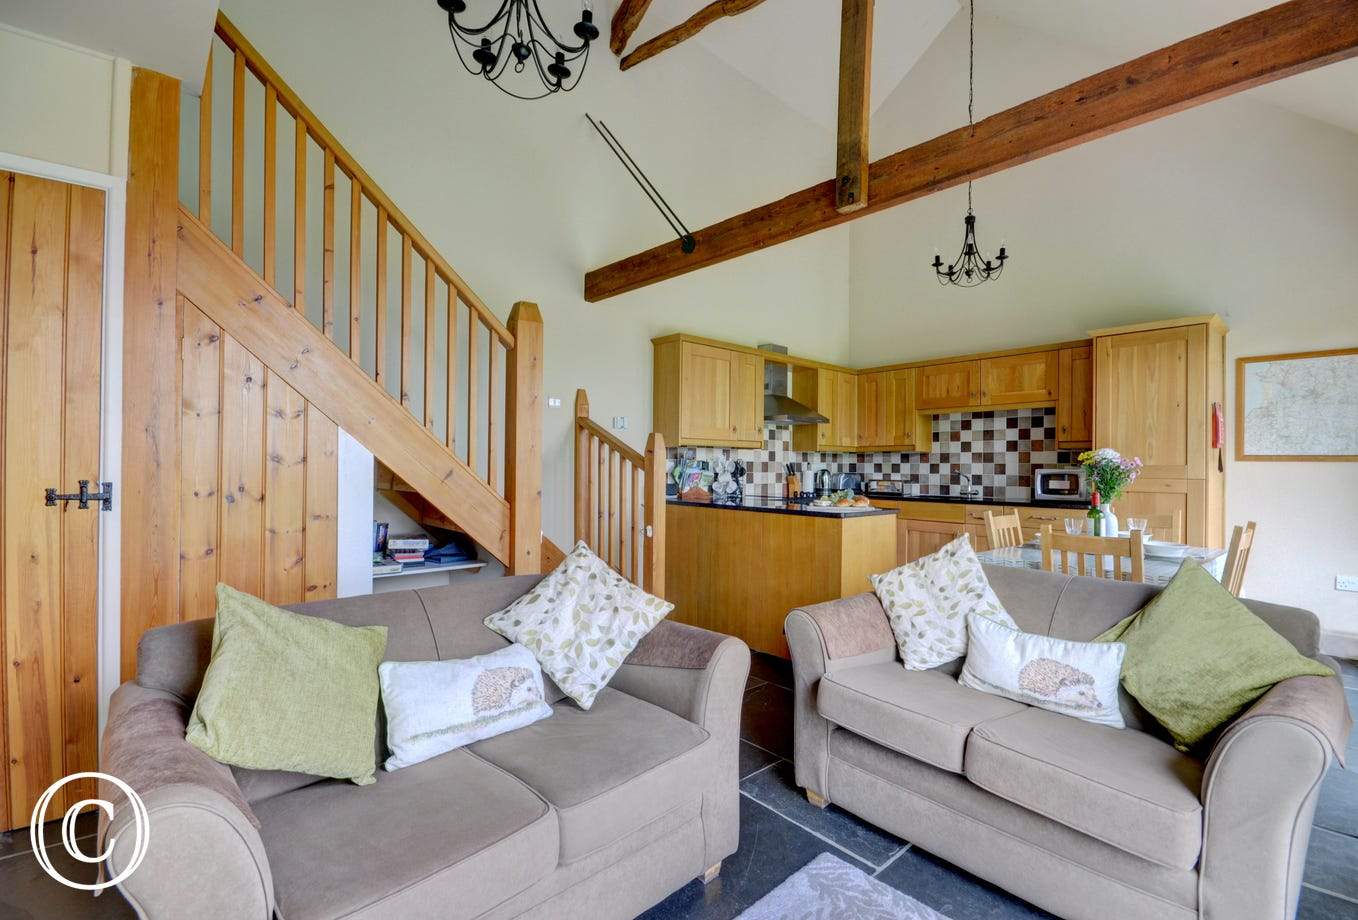 So much character has been kept in this wonderful open plan living area